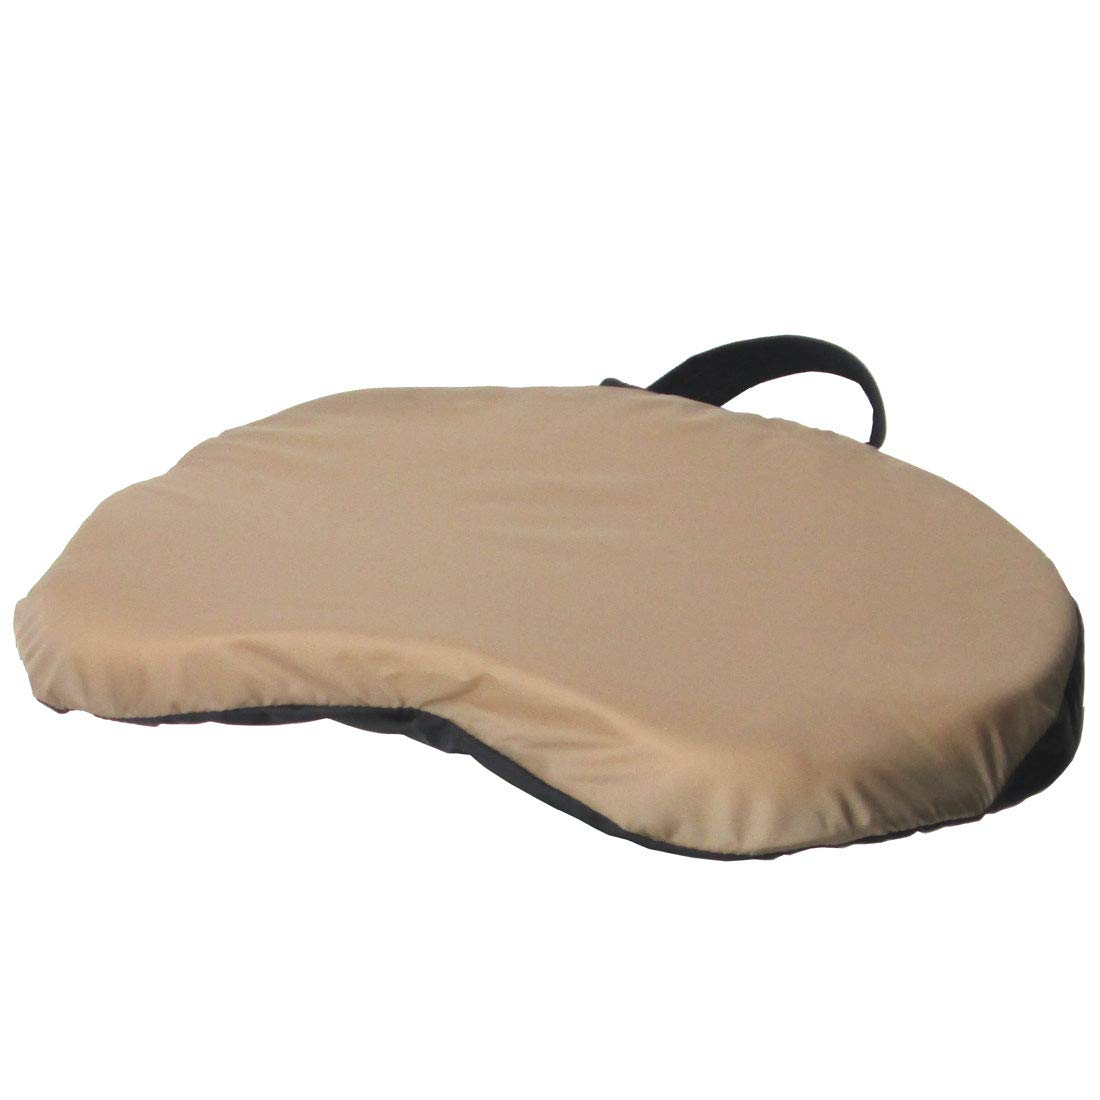 Vertex Comfort Cushion with Cover for Made in USA Garden Rockers and Rolling Comfort Seats. Does NOT fit Other Rolling scoots and Garden Seats.